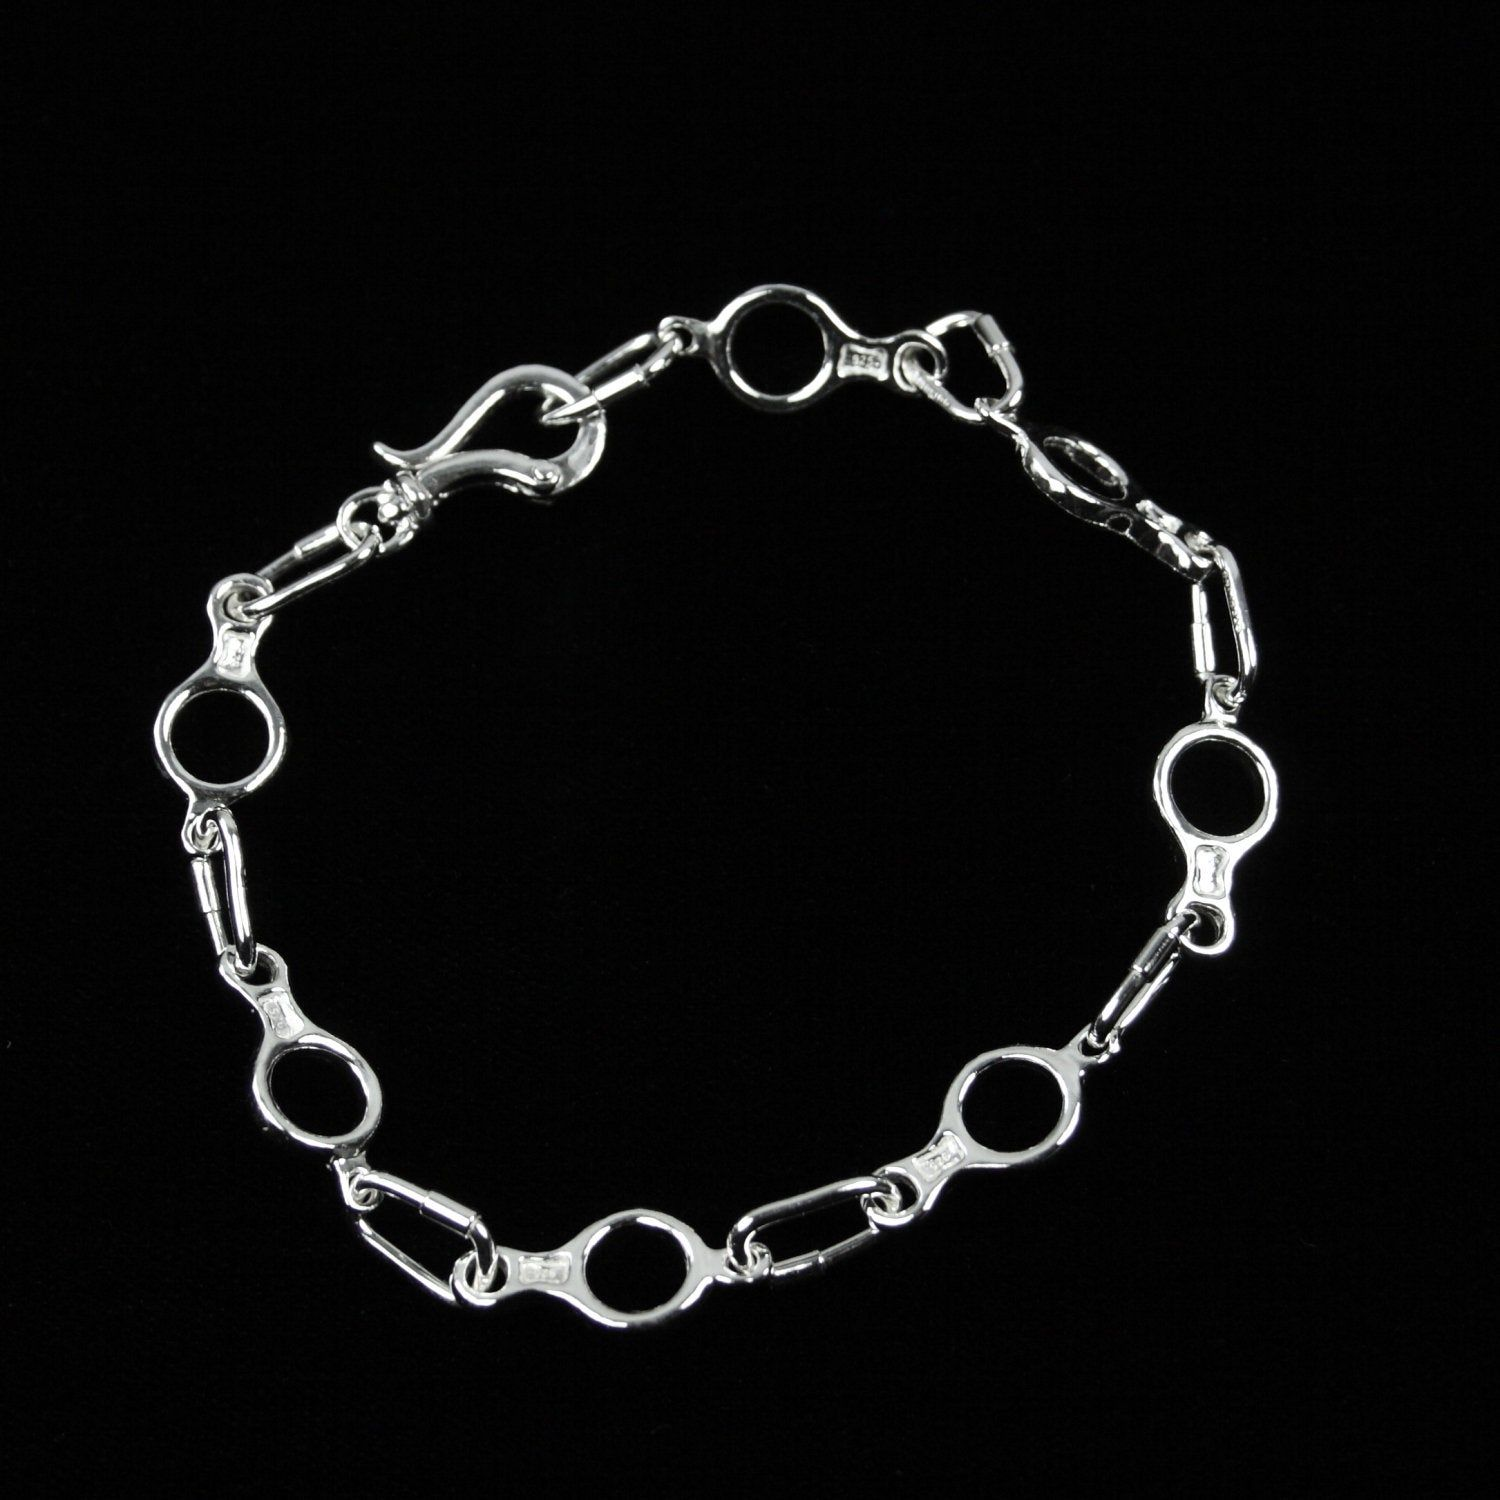 Base Metal Carabiner Chain Catches for Jewellery Making Choose Your Finish